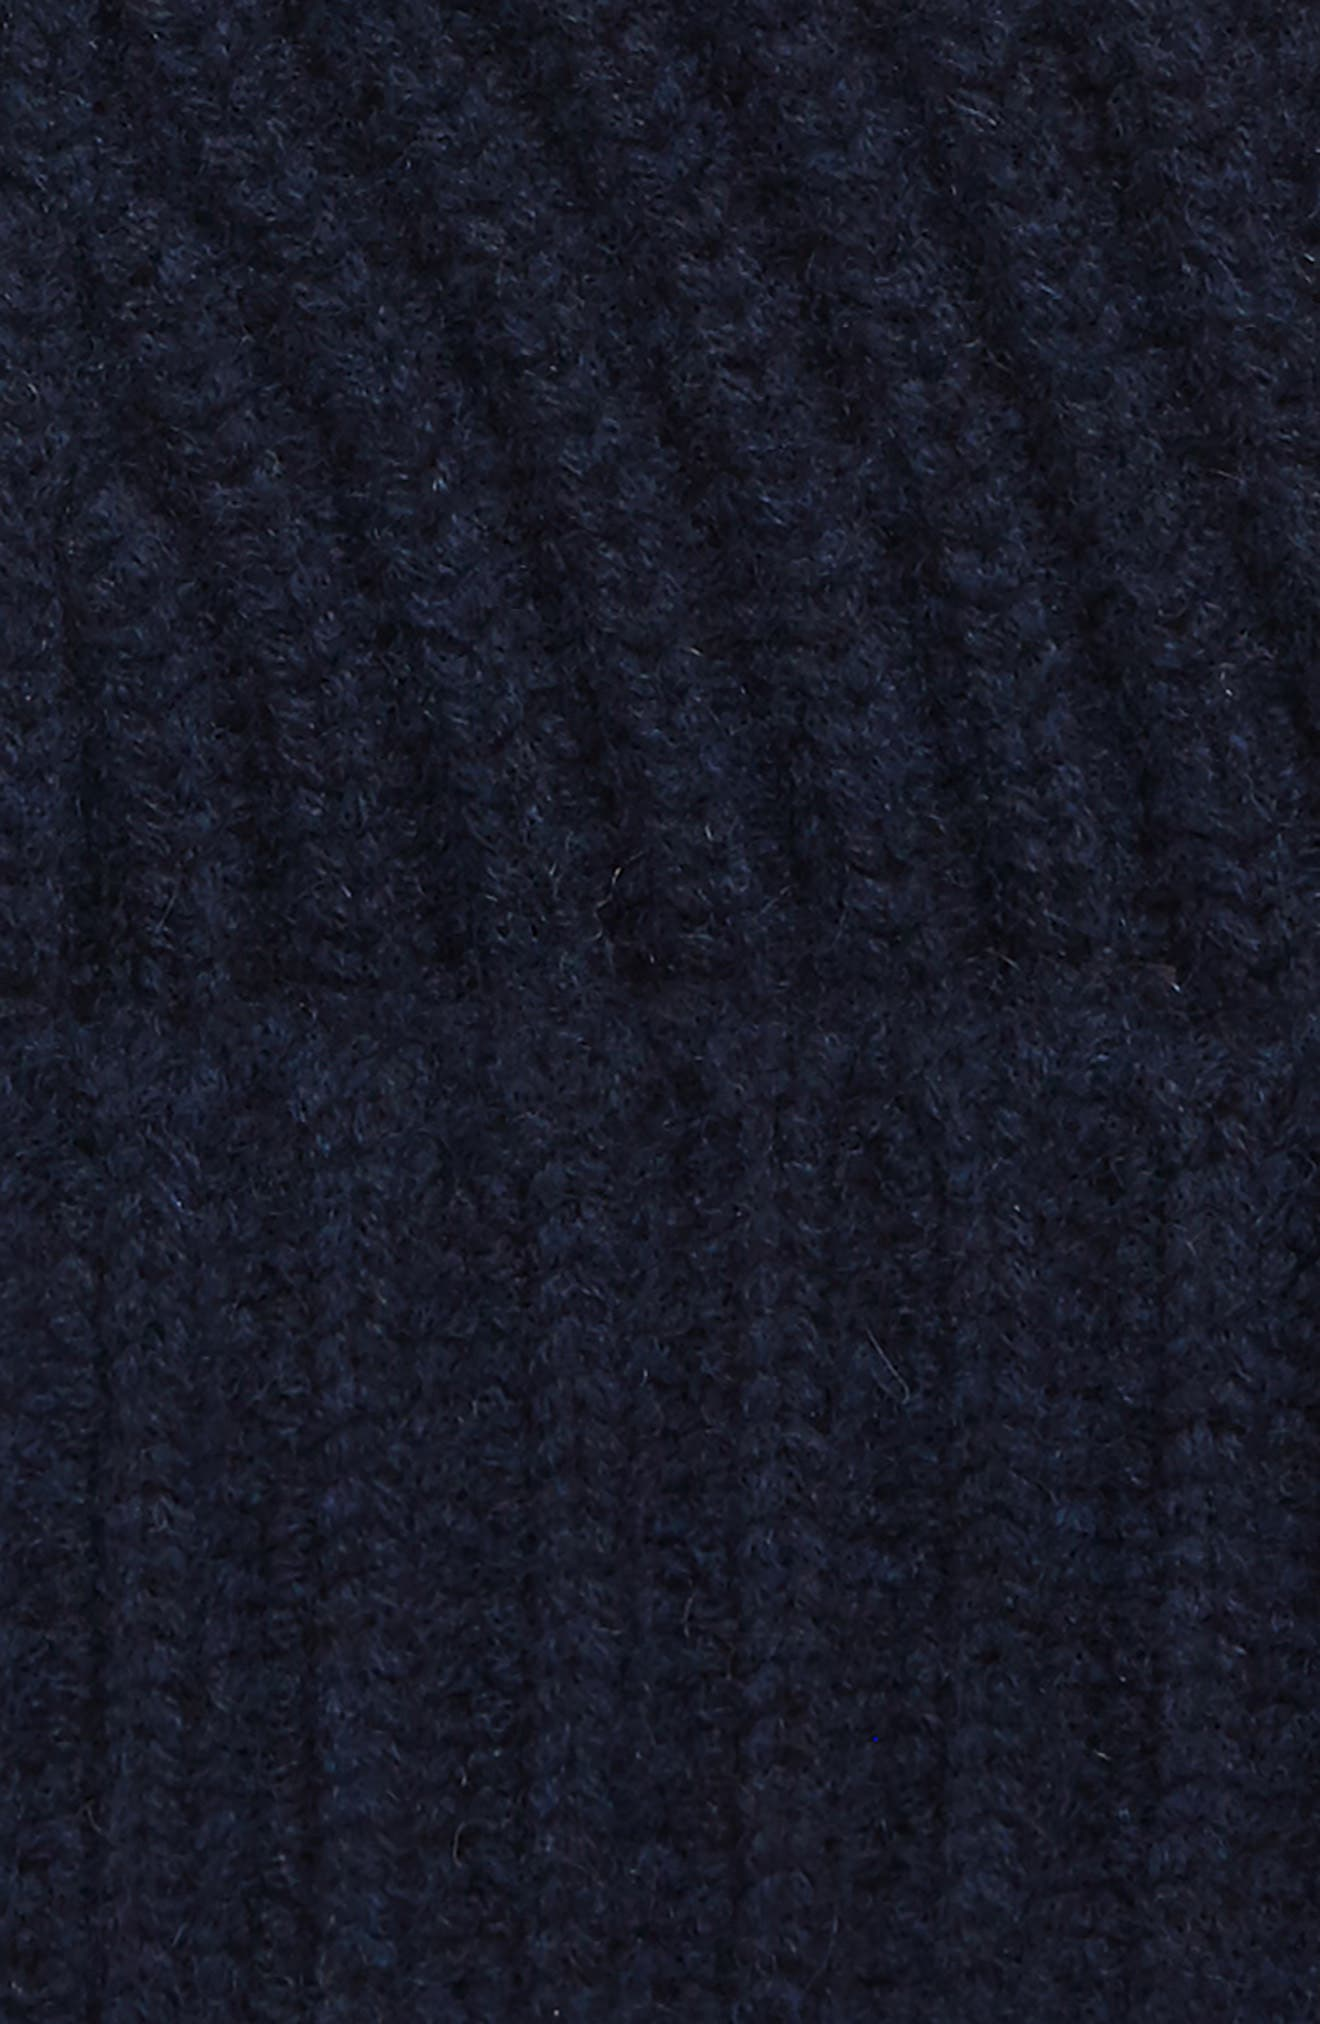 Cuffed Cashmere Beanie,                             Alternate thumbnail 2, color,                             NAVY